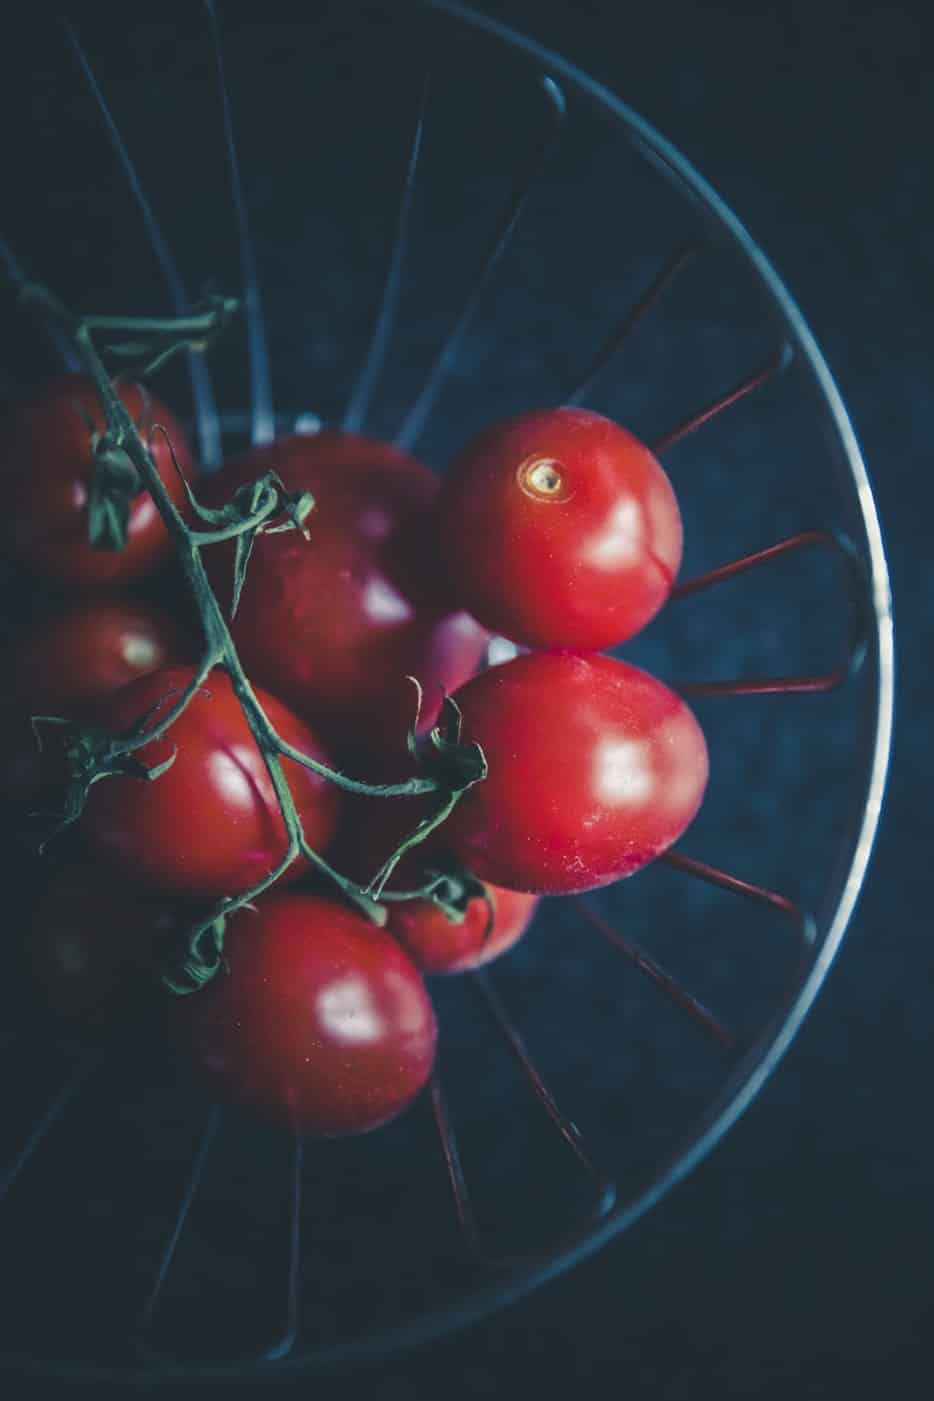 5 Best Hydroponic System for Tomatoes in 2019 Reviewed